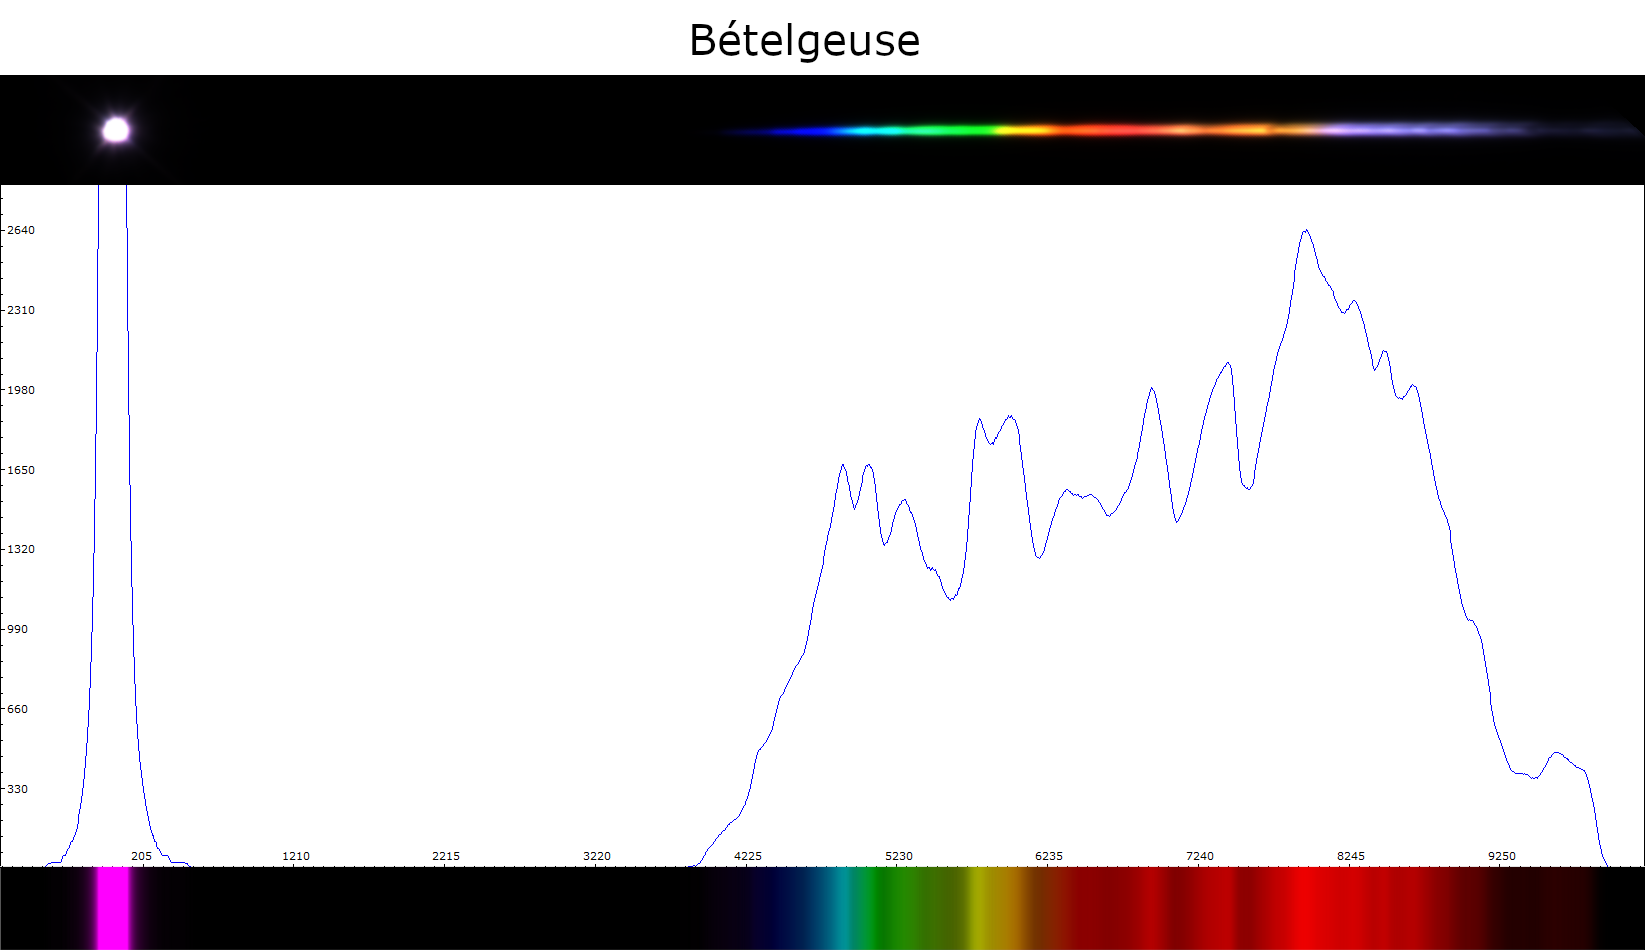 Betelgeuse_analyse.png.4e088af1ee29749aa65f1f8049d24ae4.png